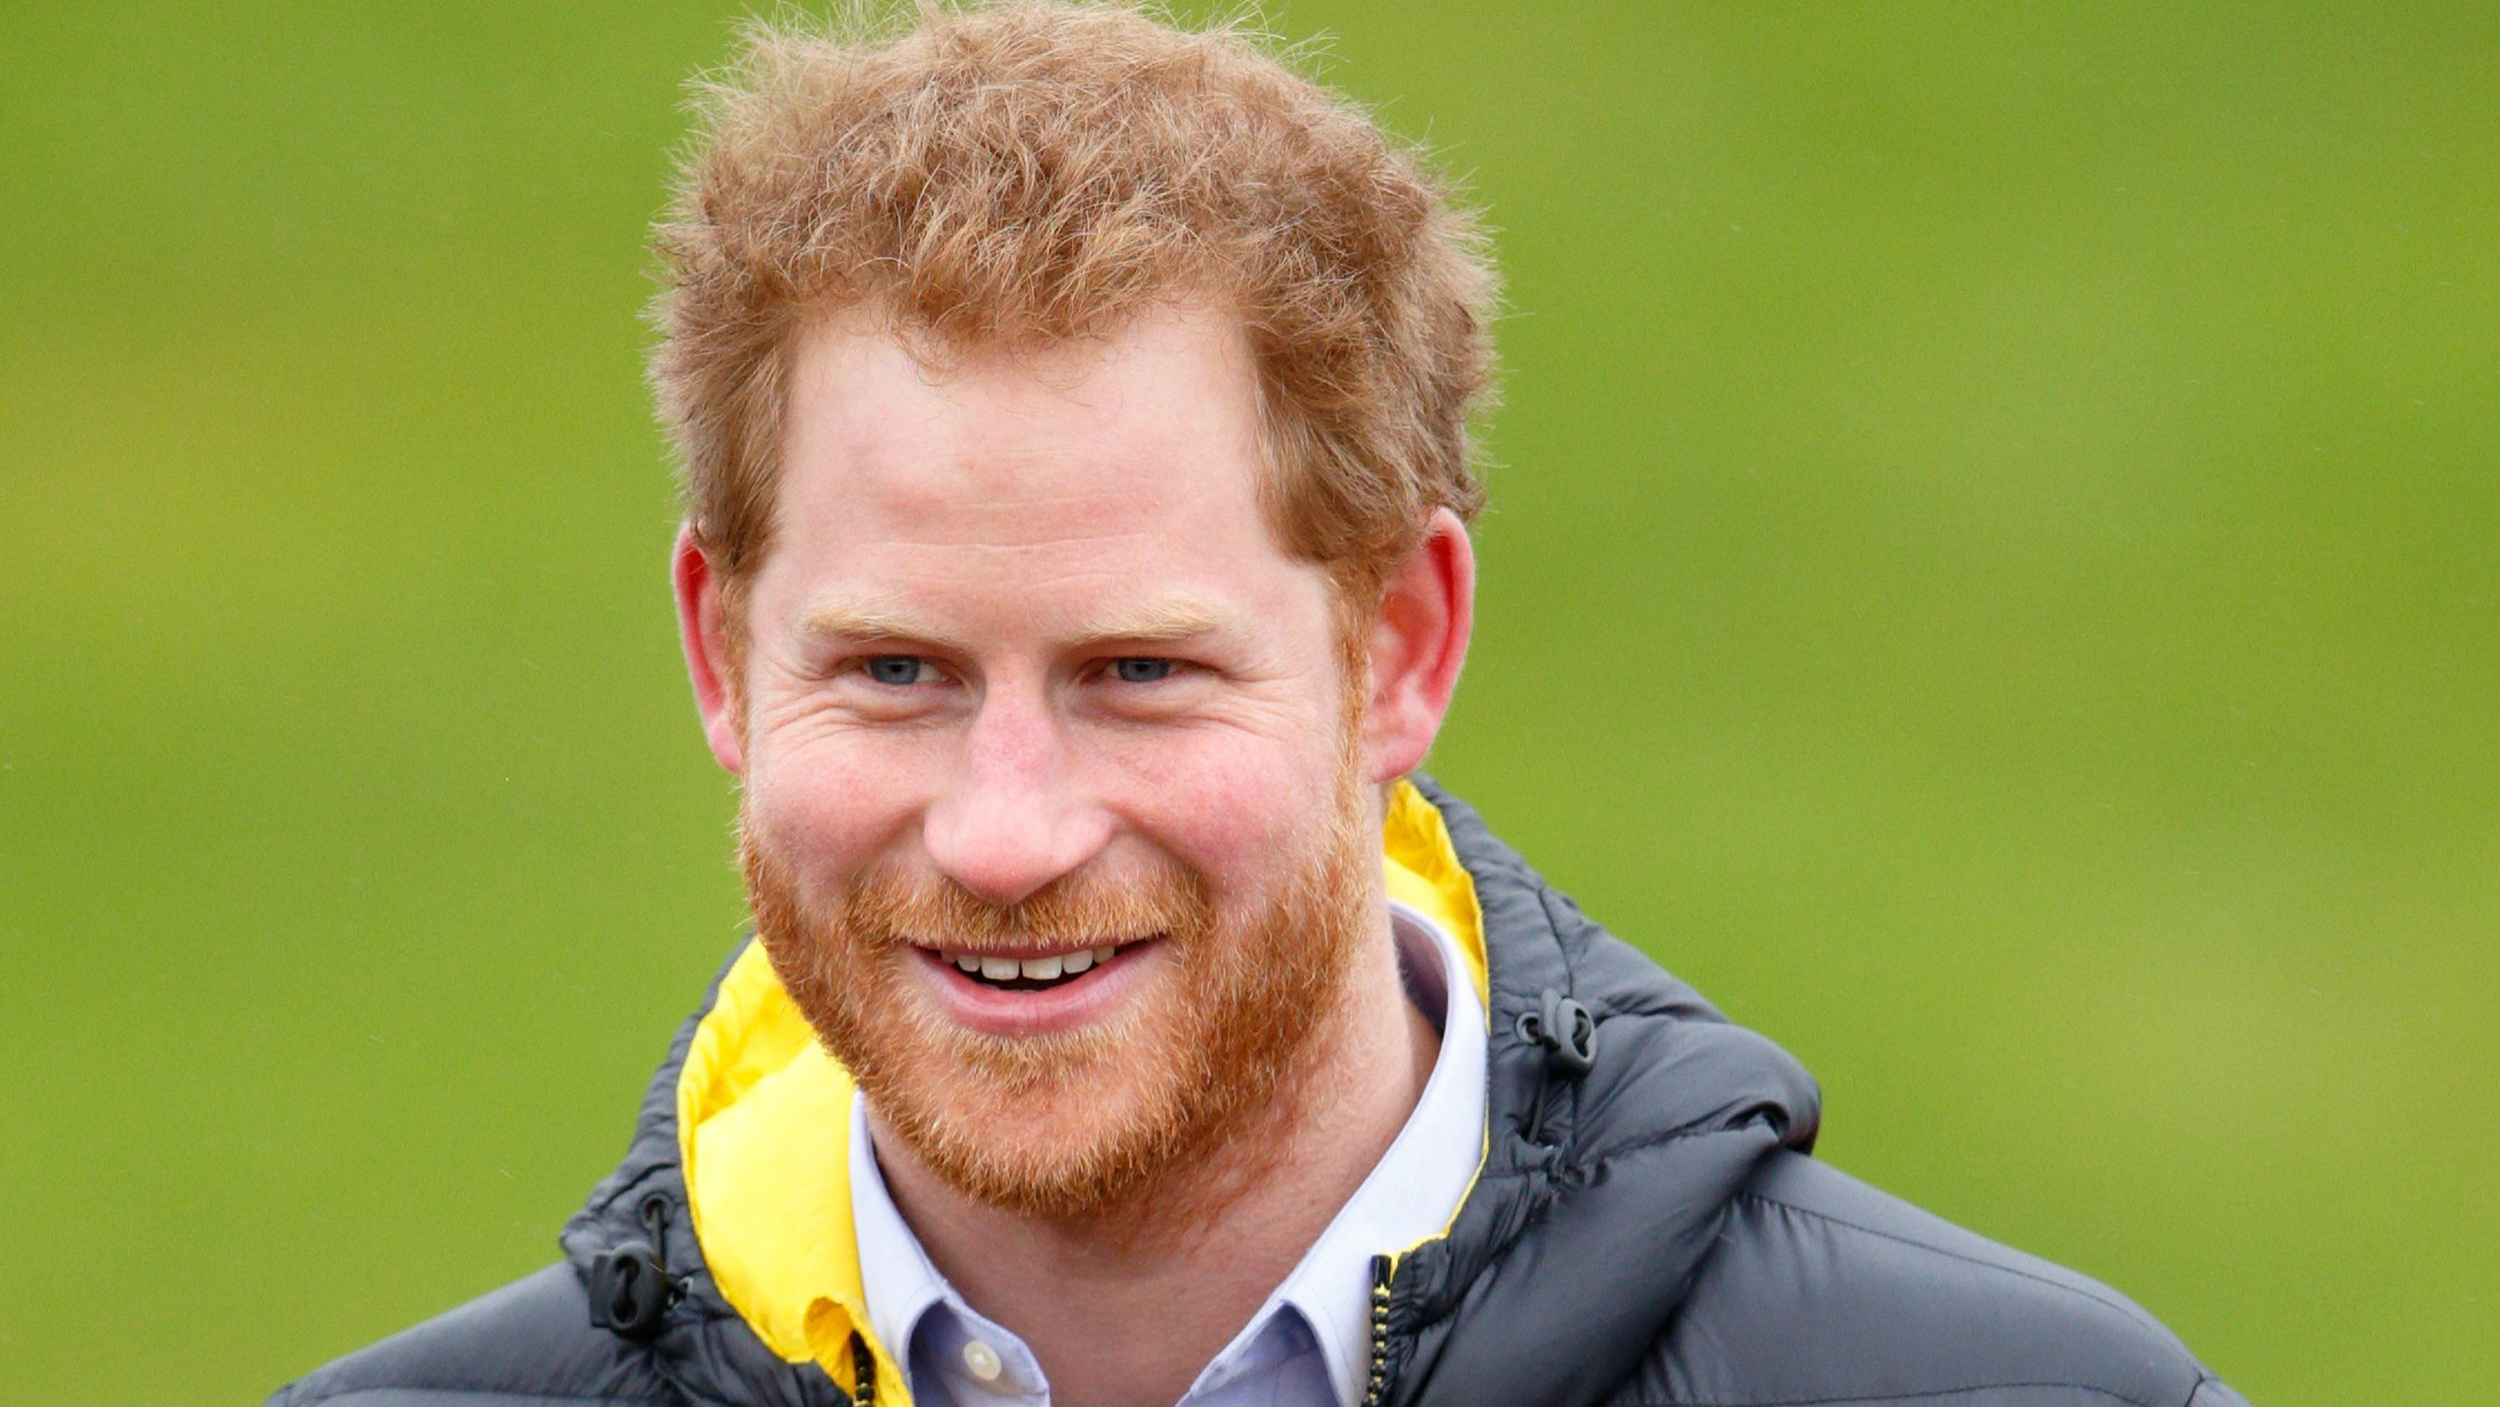 Image: Prince Harry Attends UK Team Trials For The Invictus Games Orlando 2016